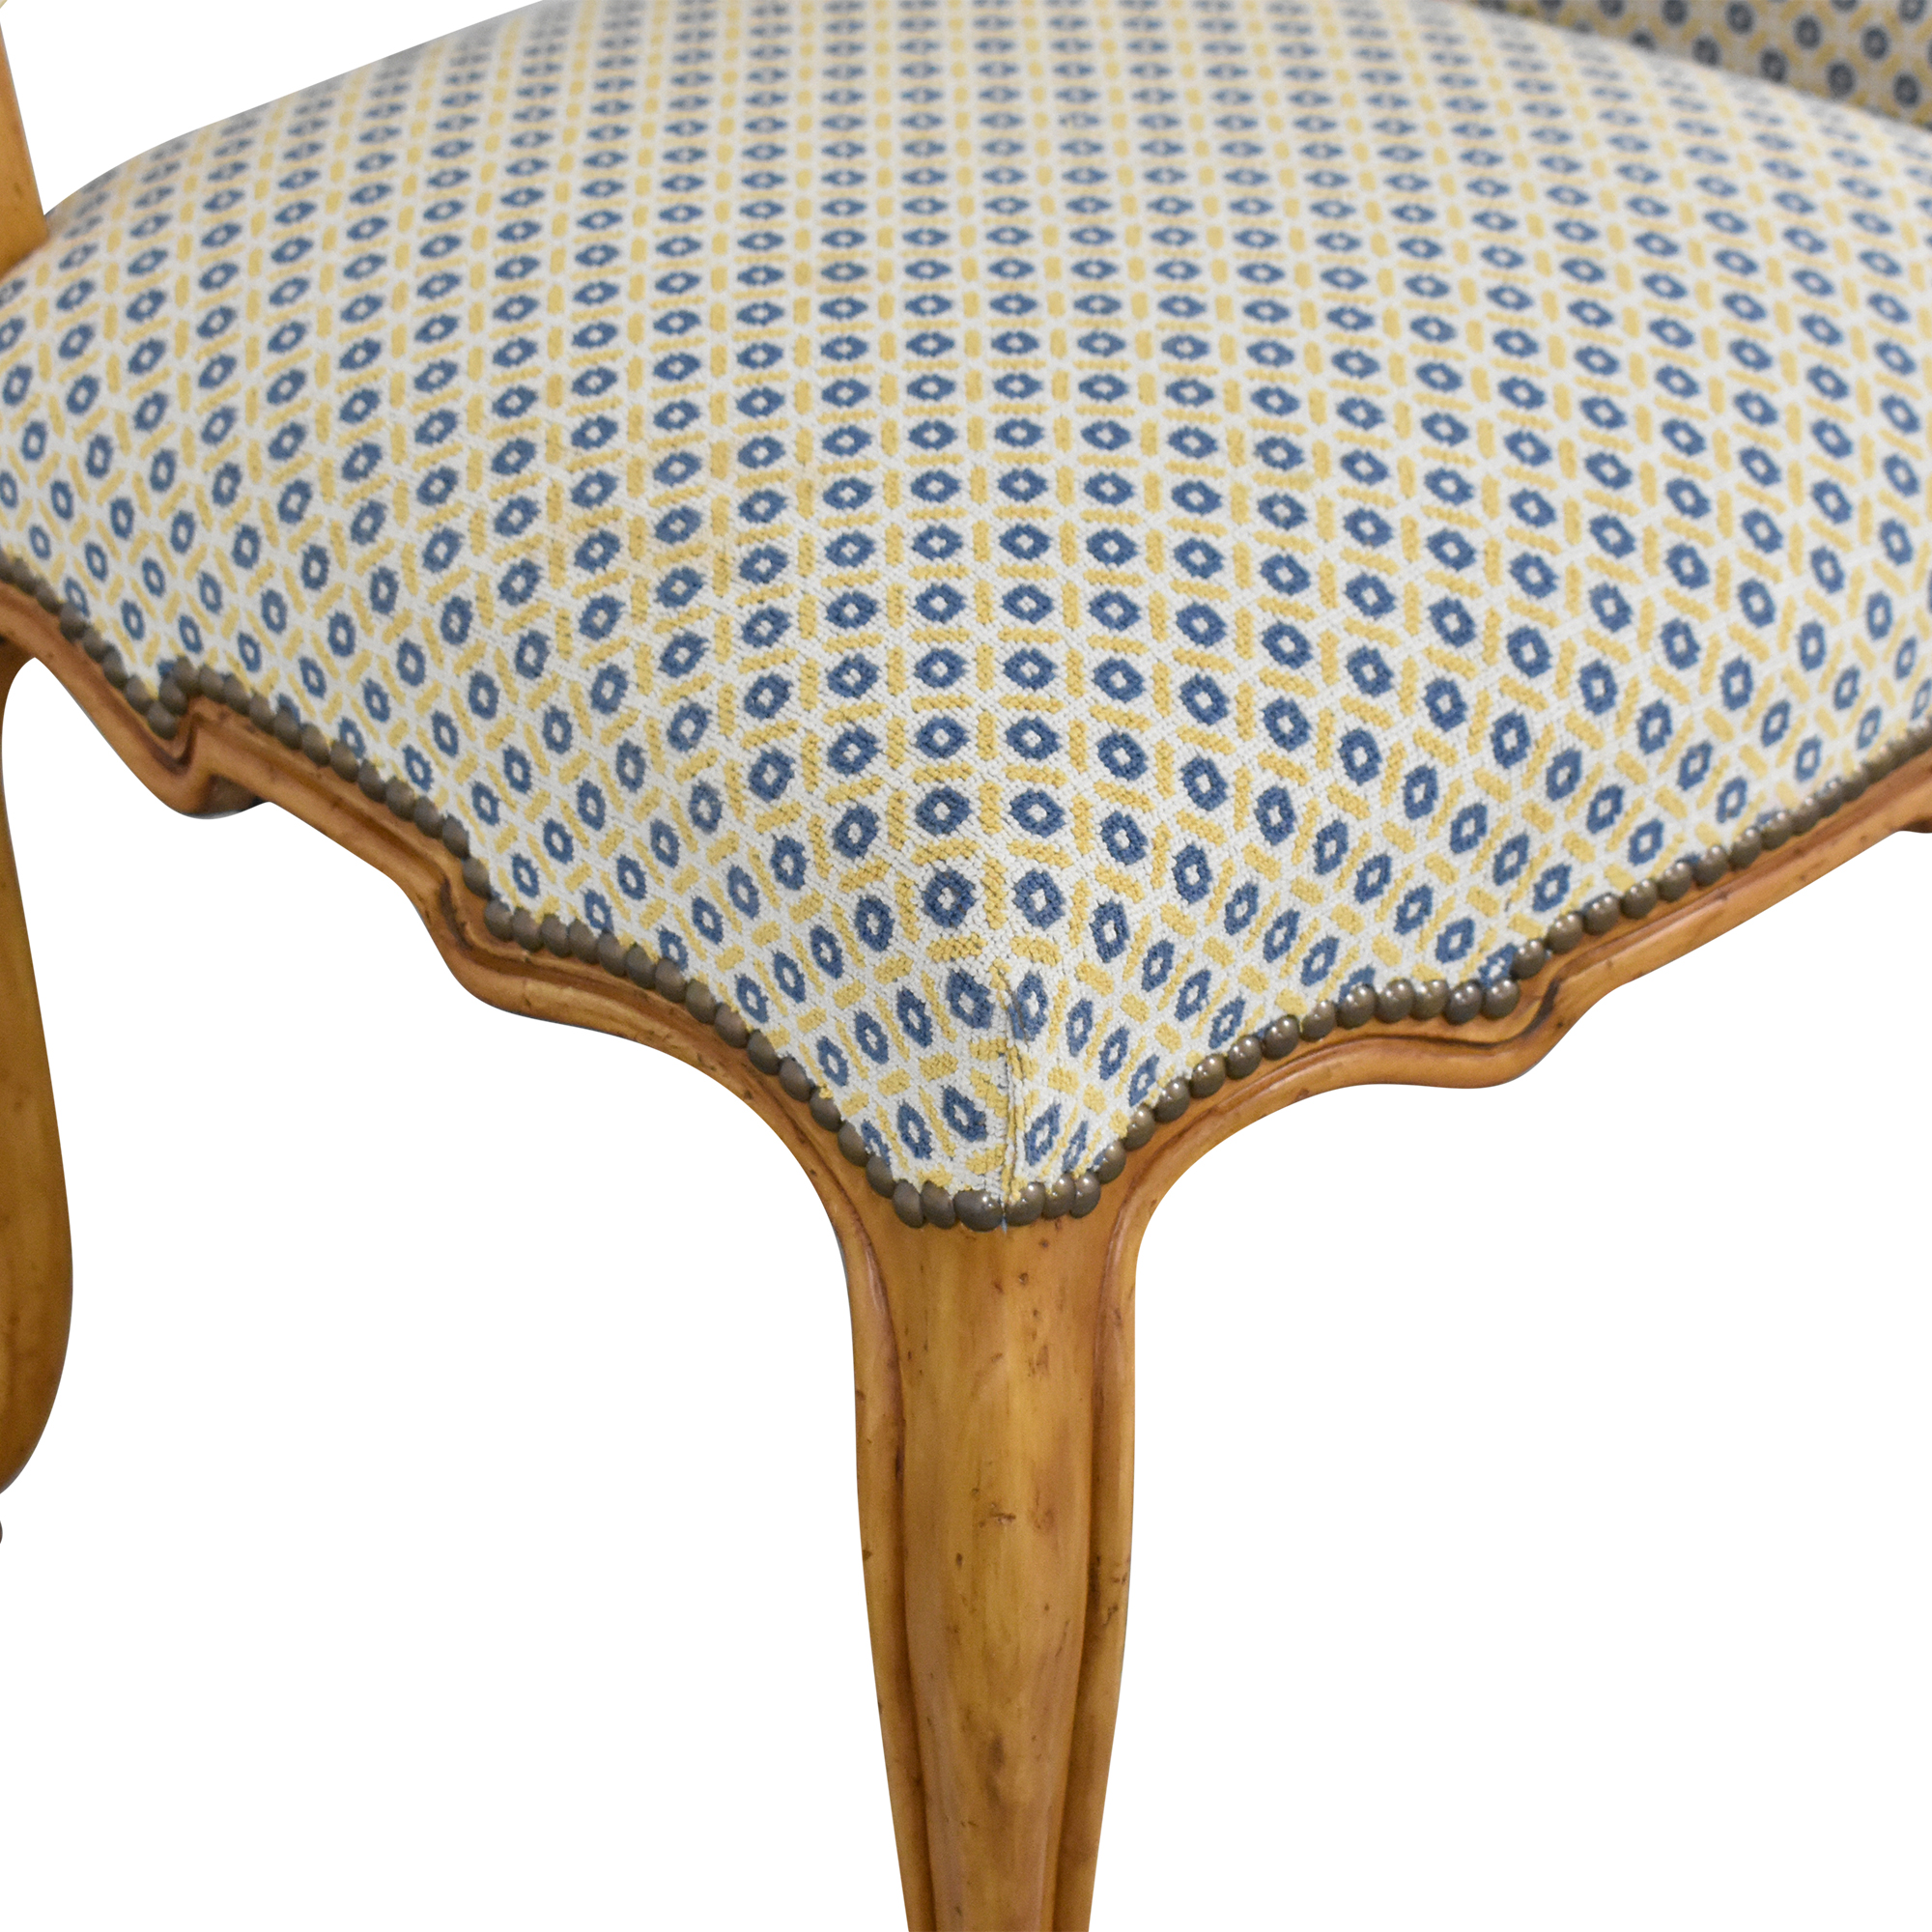 Minton-Spidell Minton-Spidell Regence Dining Side Chairs mutli